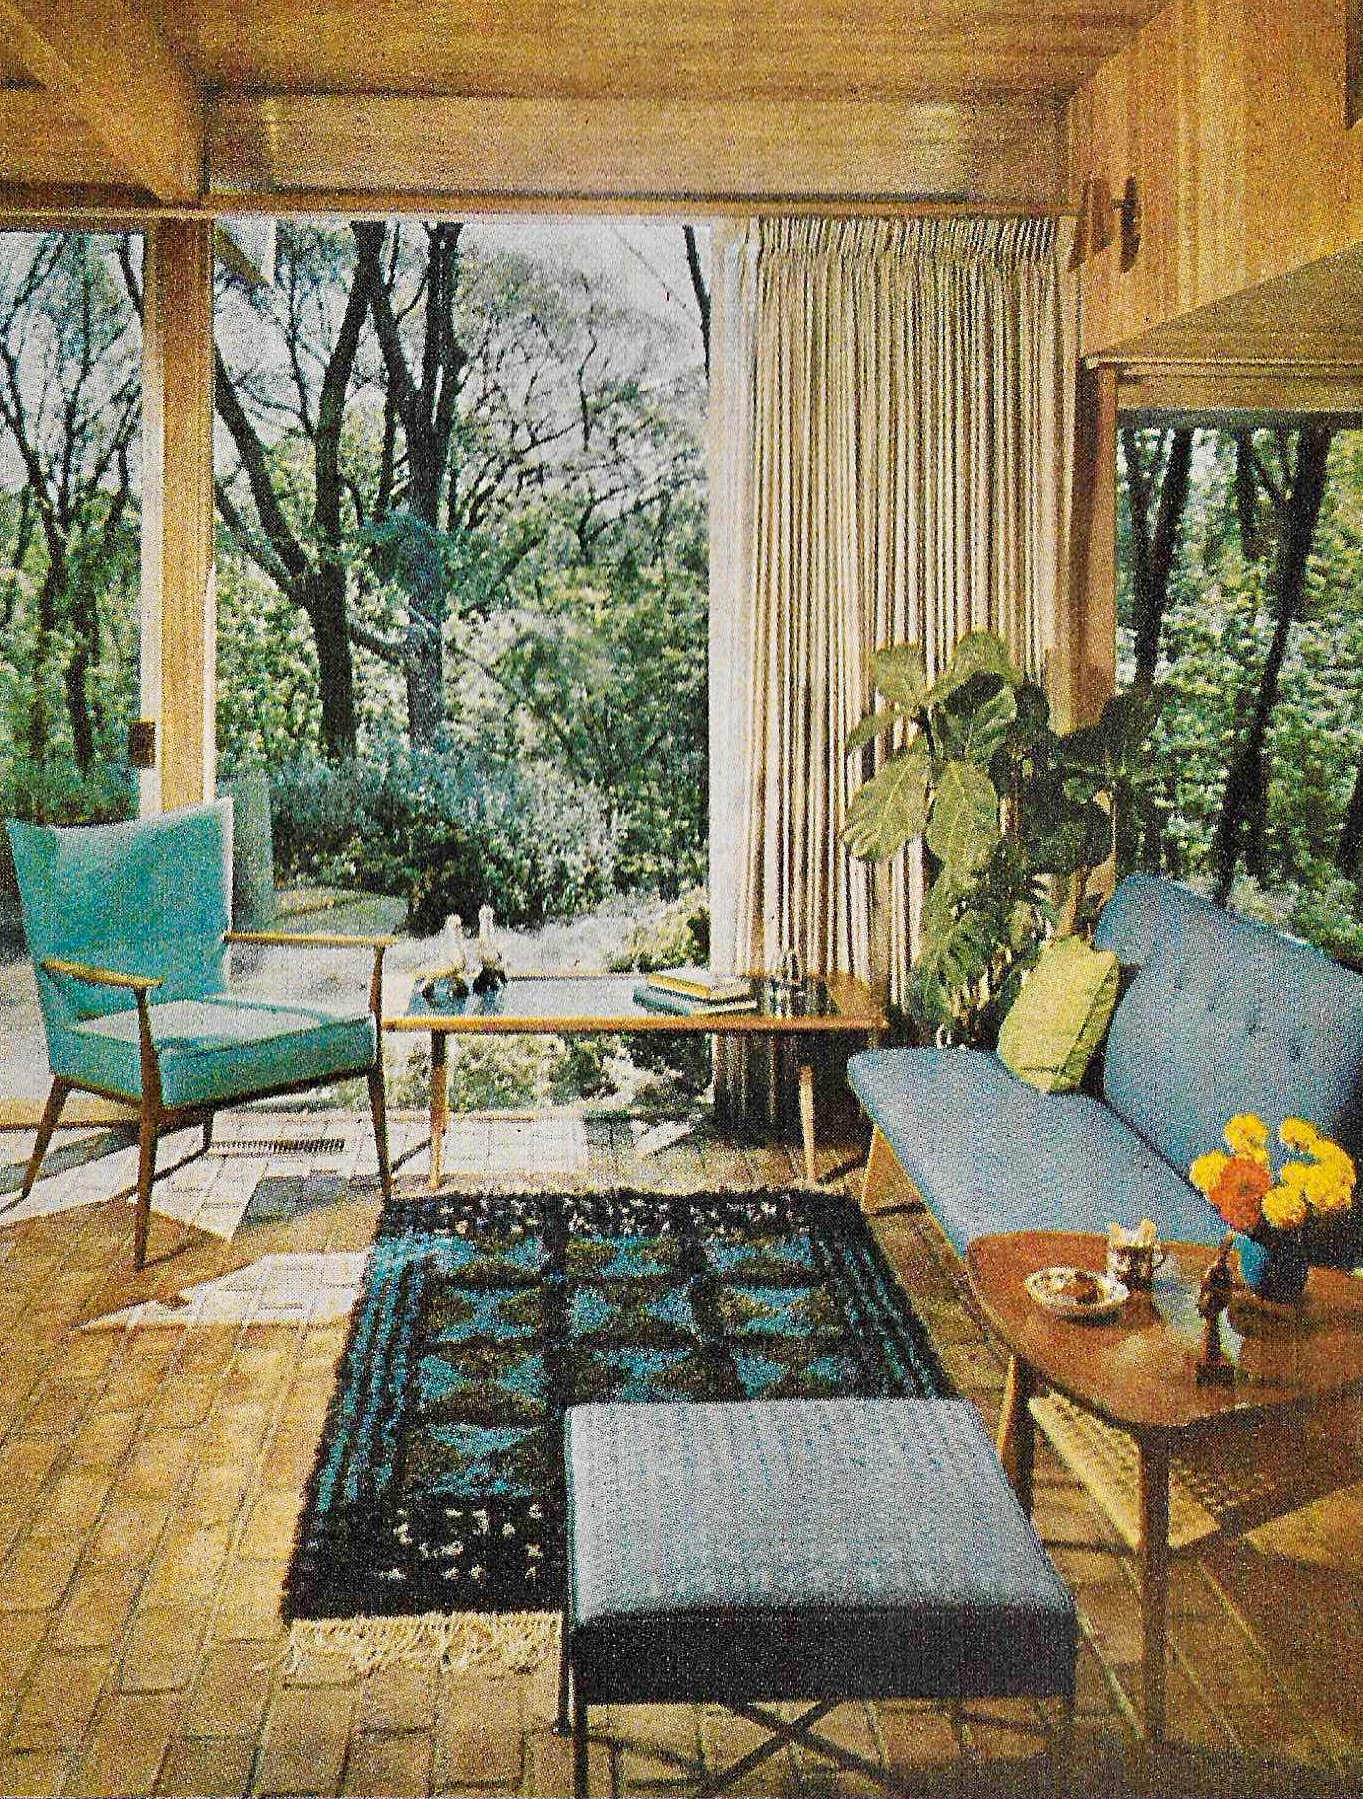 1961 Better Homes And Gardens Decorating Book Design Trends From The Past Retro Den Vintage Furniture And Homewares